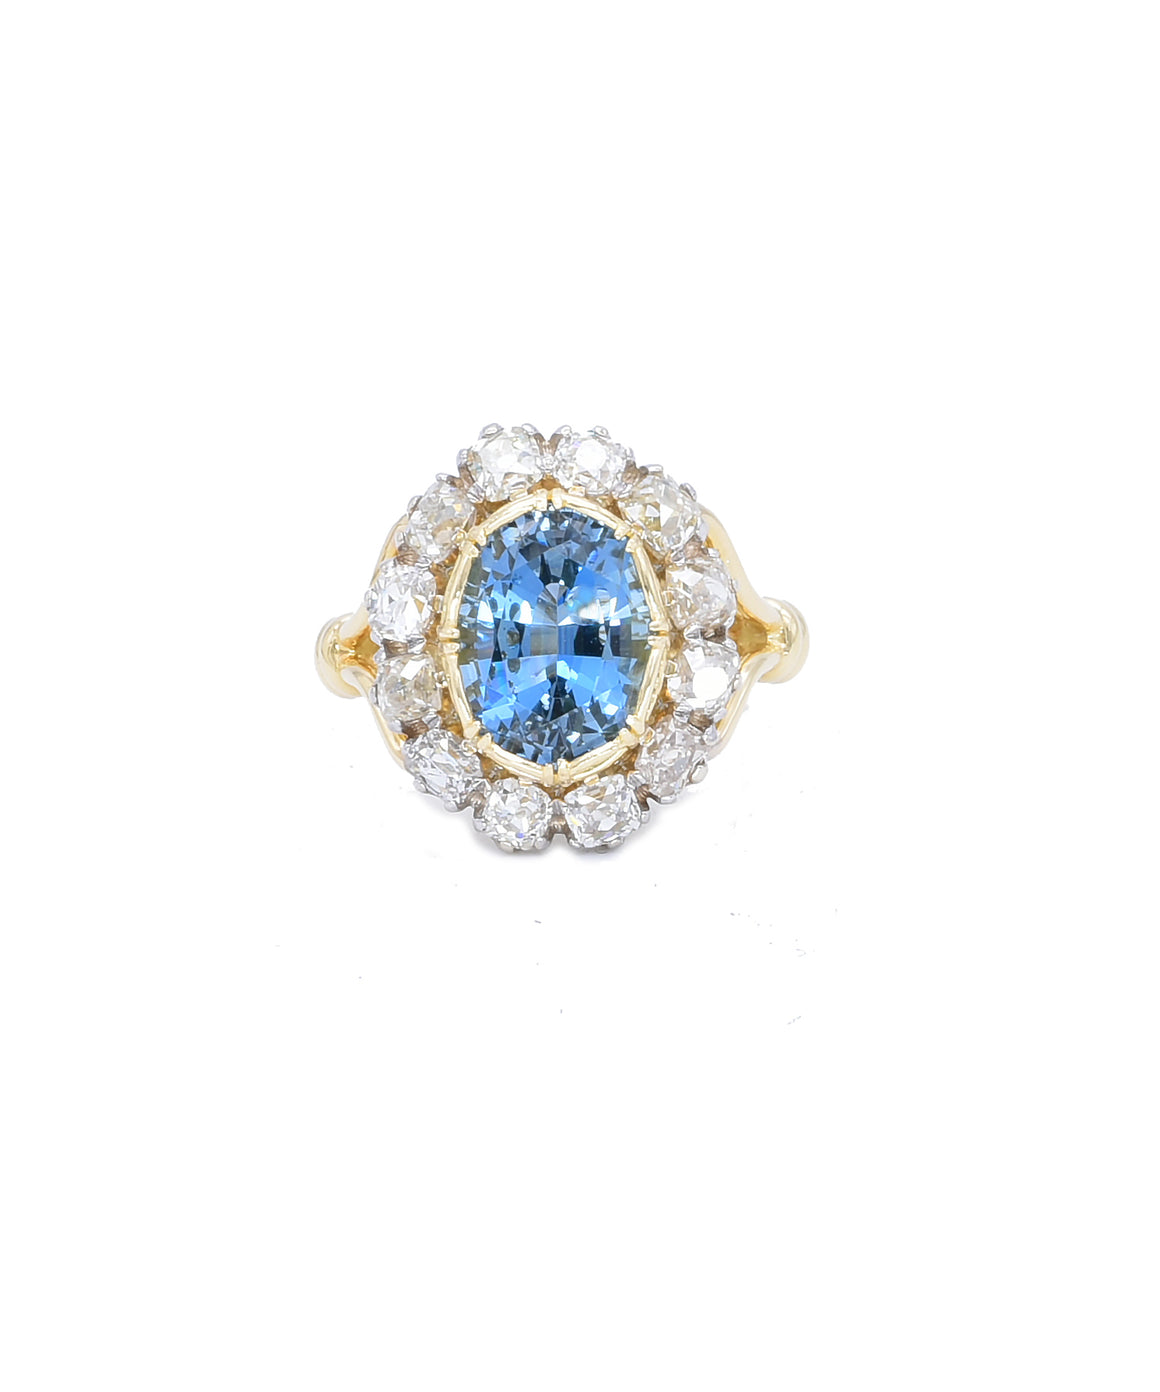 "You just don't see aquamarines with a color this intense anymore. The oval 3.28 carat aquamarine is from a mine that no longer produces. It is surrounded with Old Mine cut diamonds totaling .95 carat. We've set the gems in a modern 18k two-tone settings. The ring is 11/16"" tall and size 6."